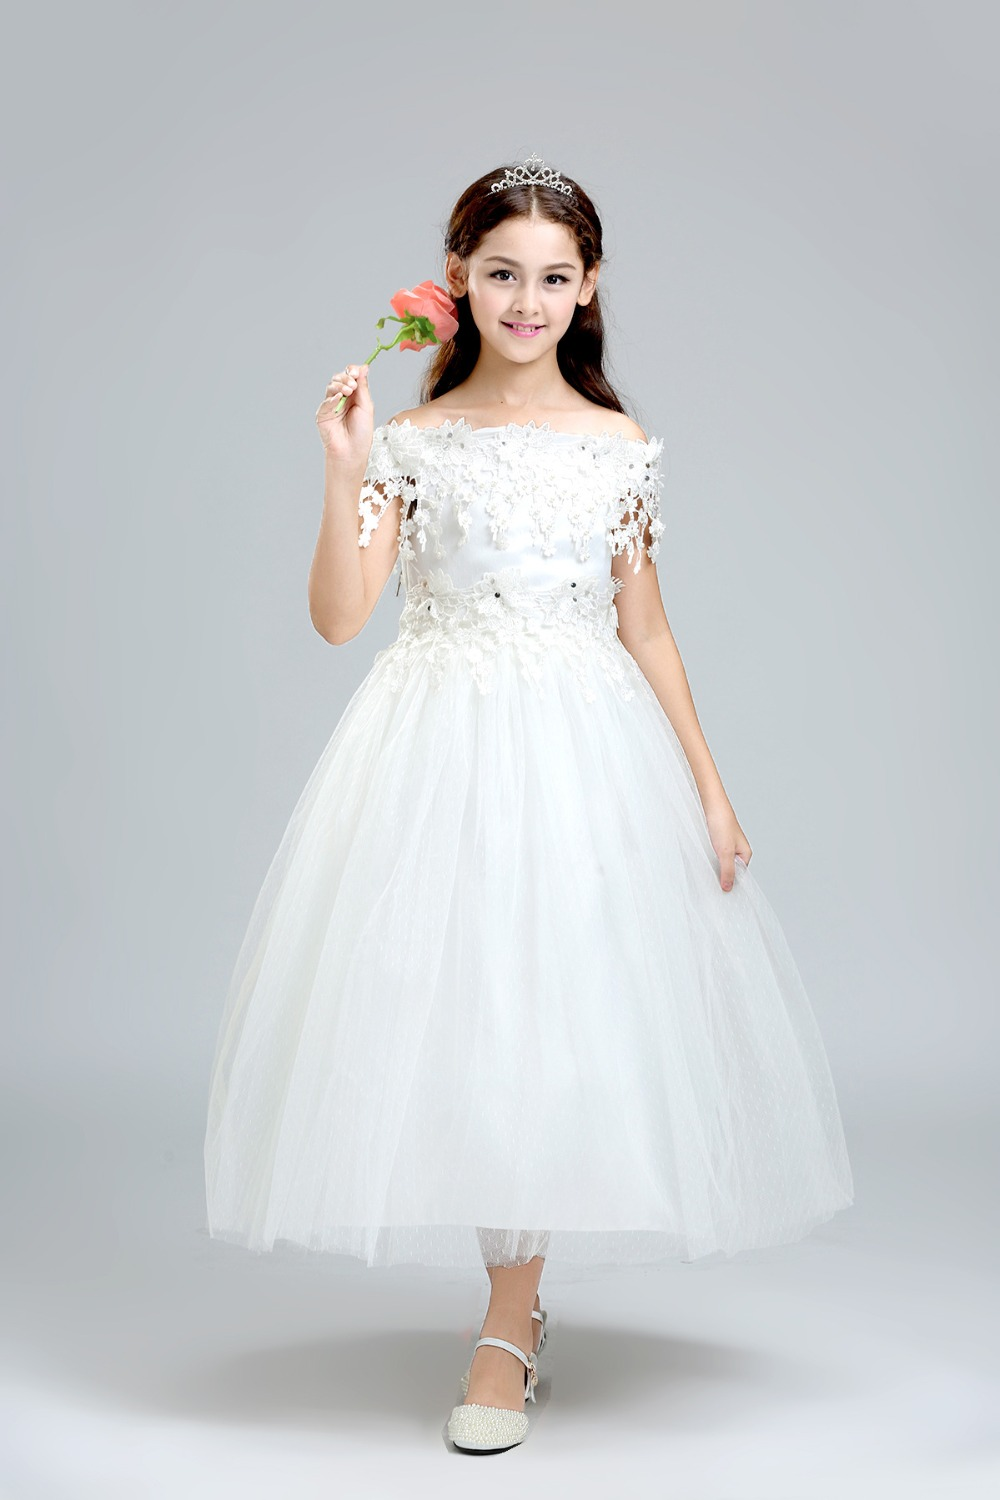 58107c7bf Aliexpress.com   Buy Appliques Lace Flower Girl Dresses for Wedding ...